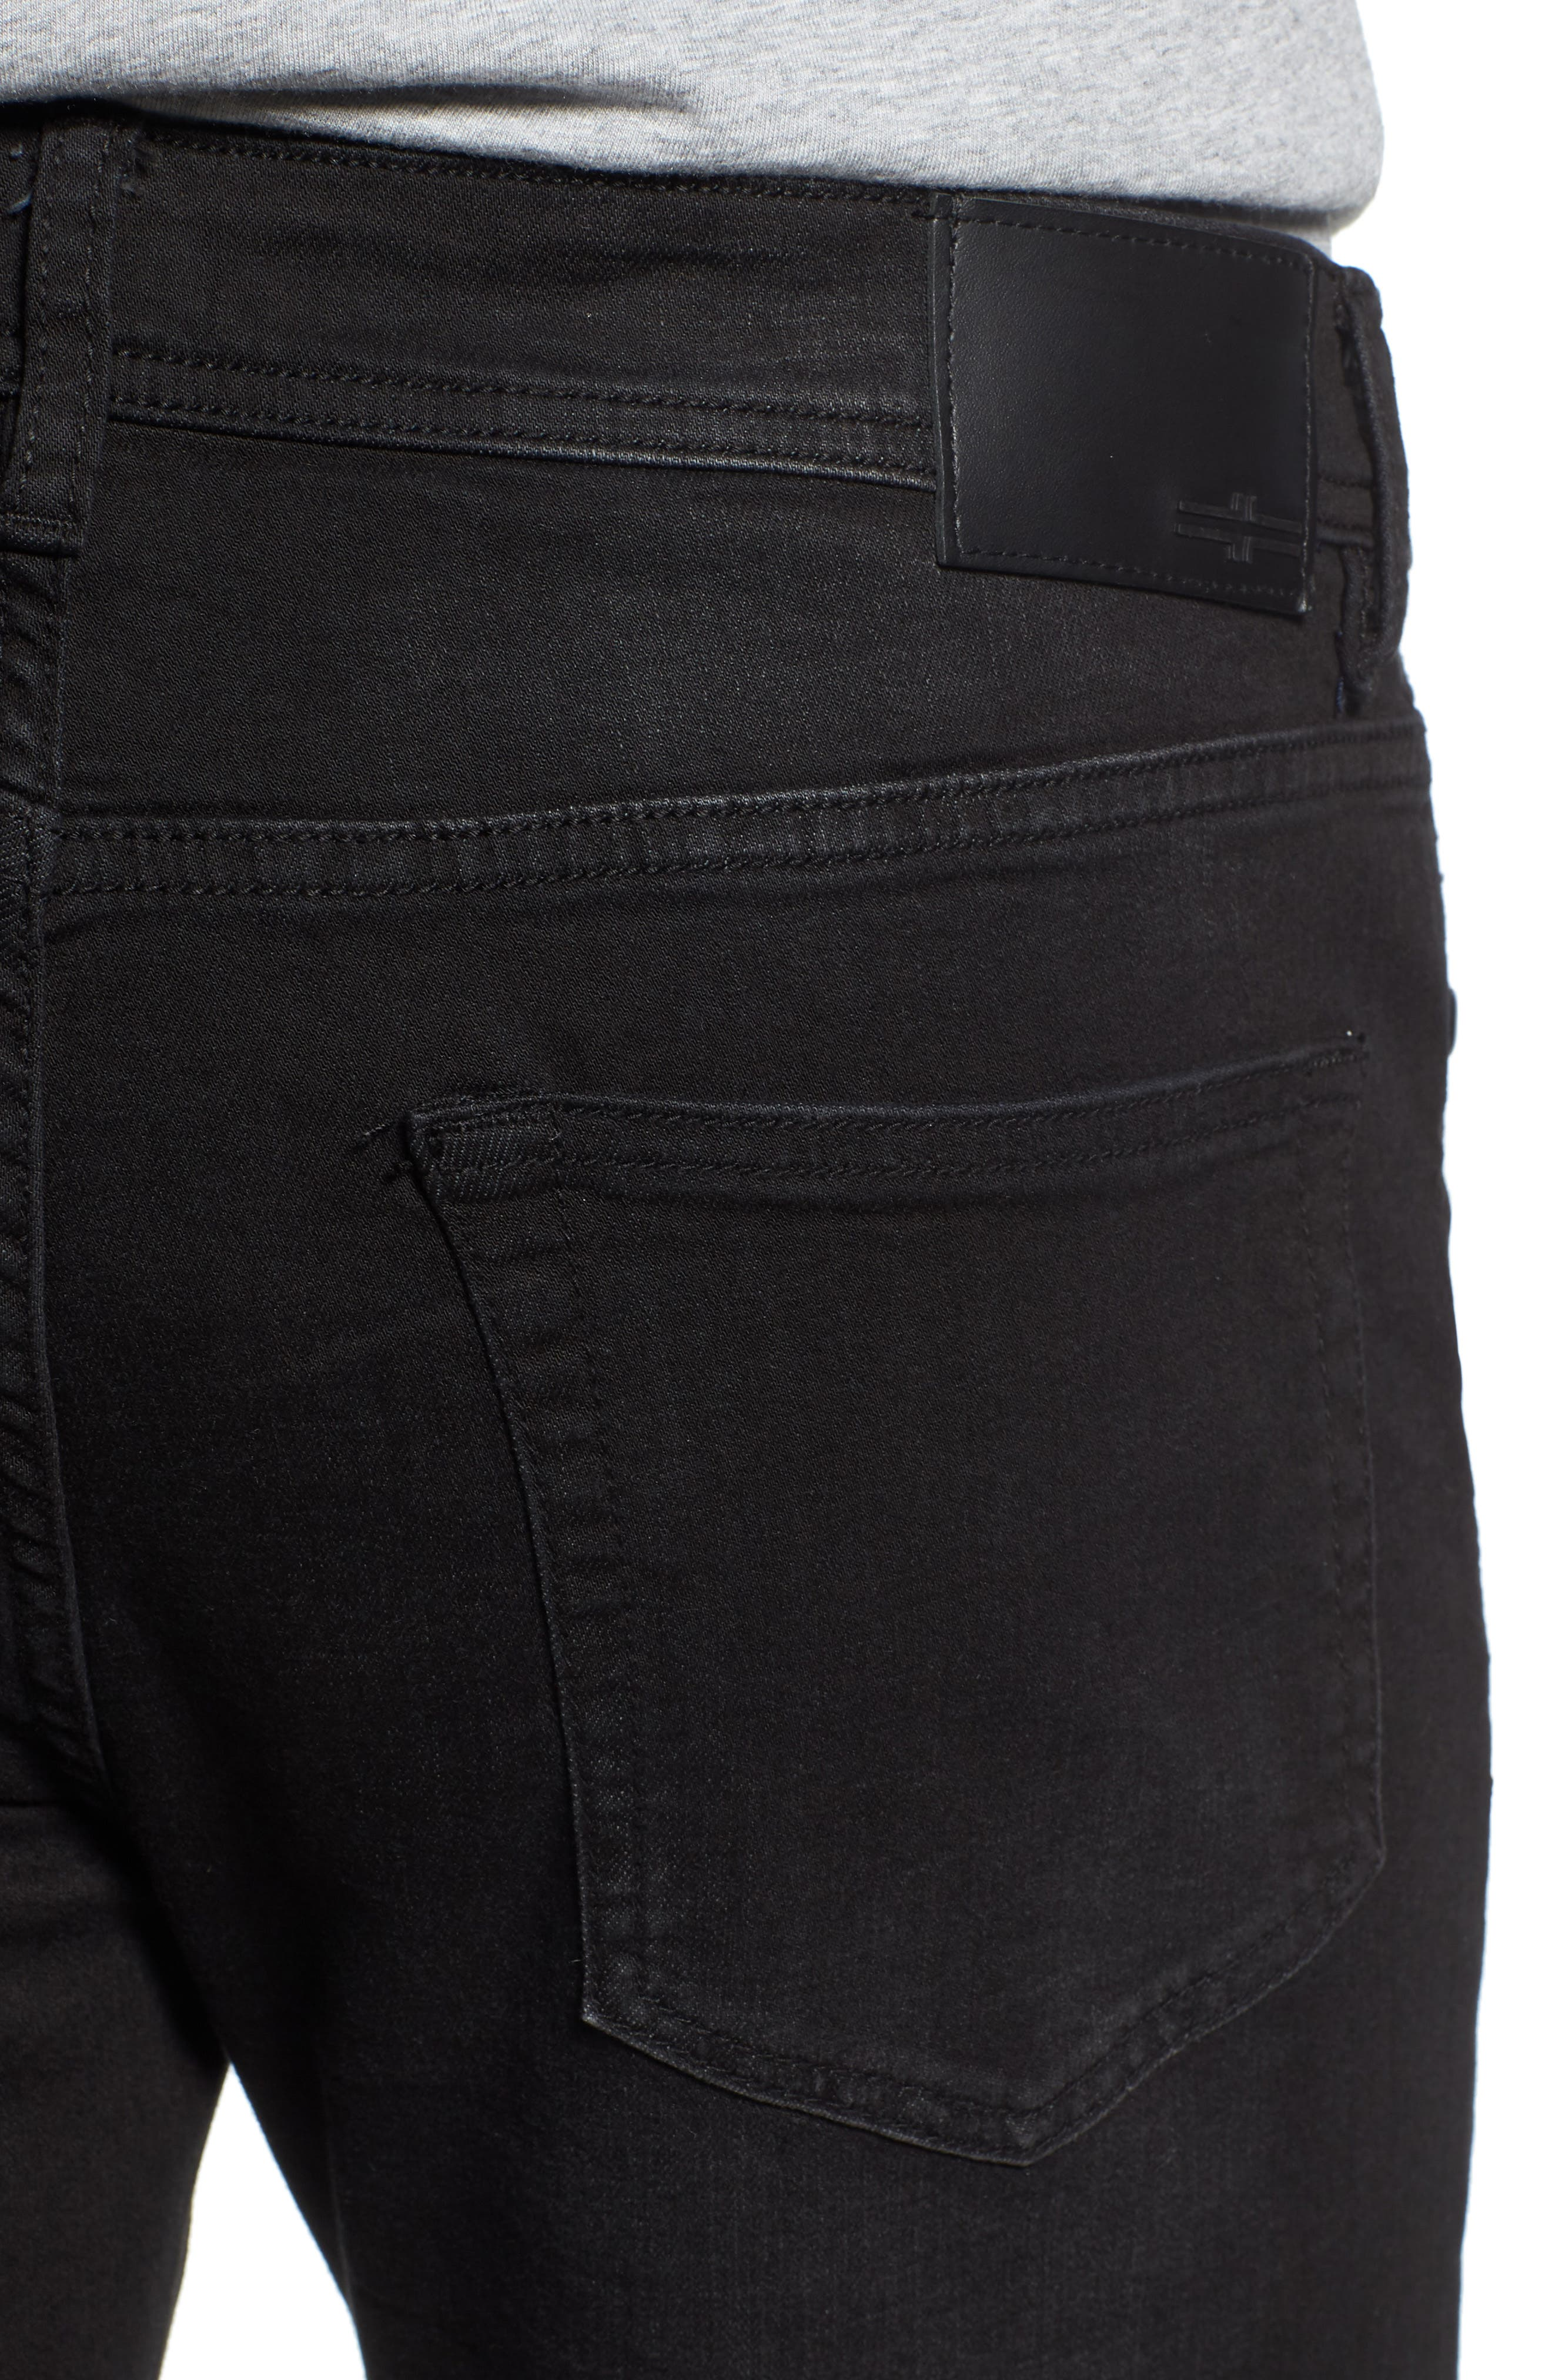 Relaxed Fit Jeans,                             Alternate thumbnail 4, color,                             002